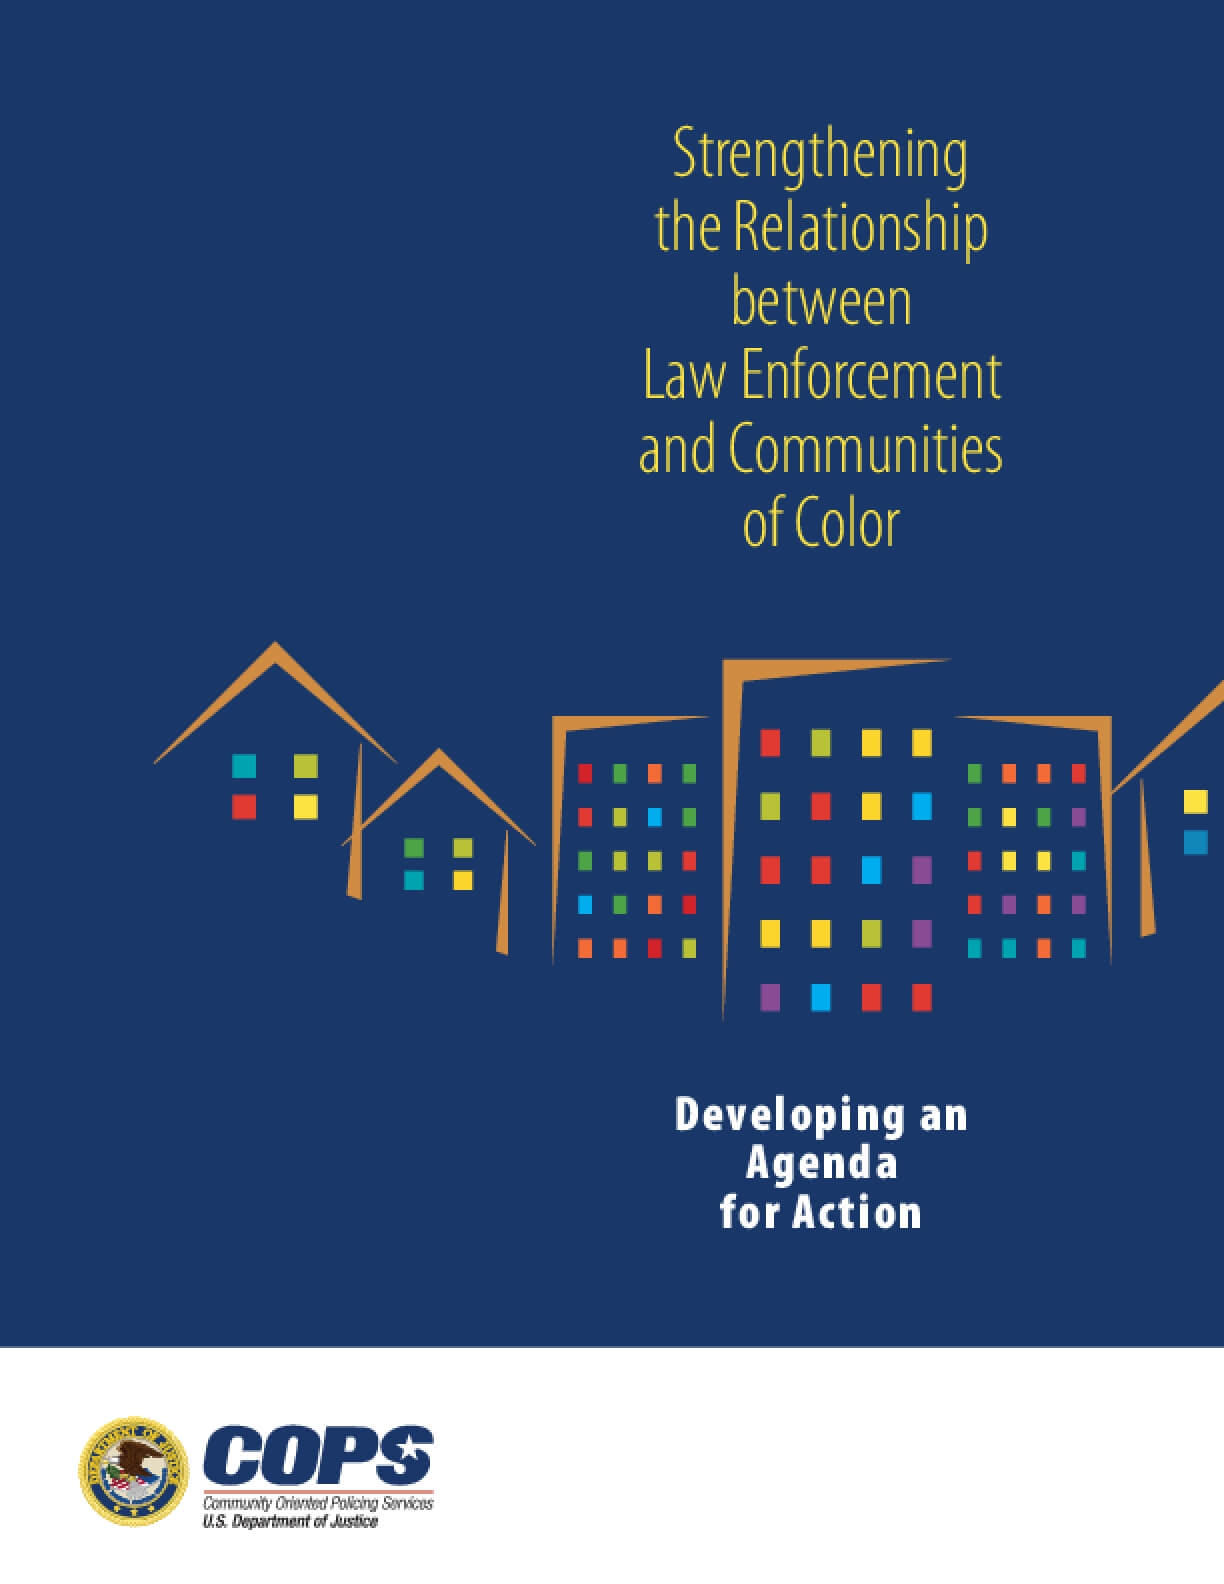 Strengthening the Relationship between Law Enforcement and Communities of Color: Developing an Agenda